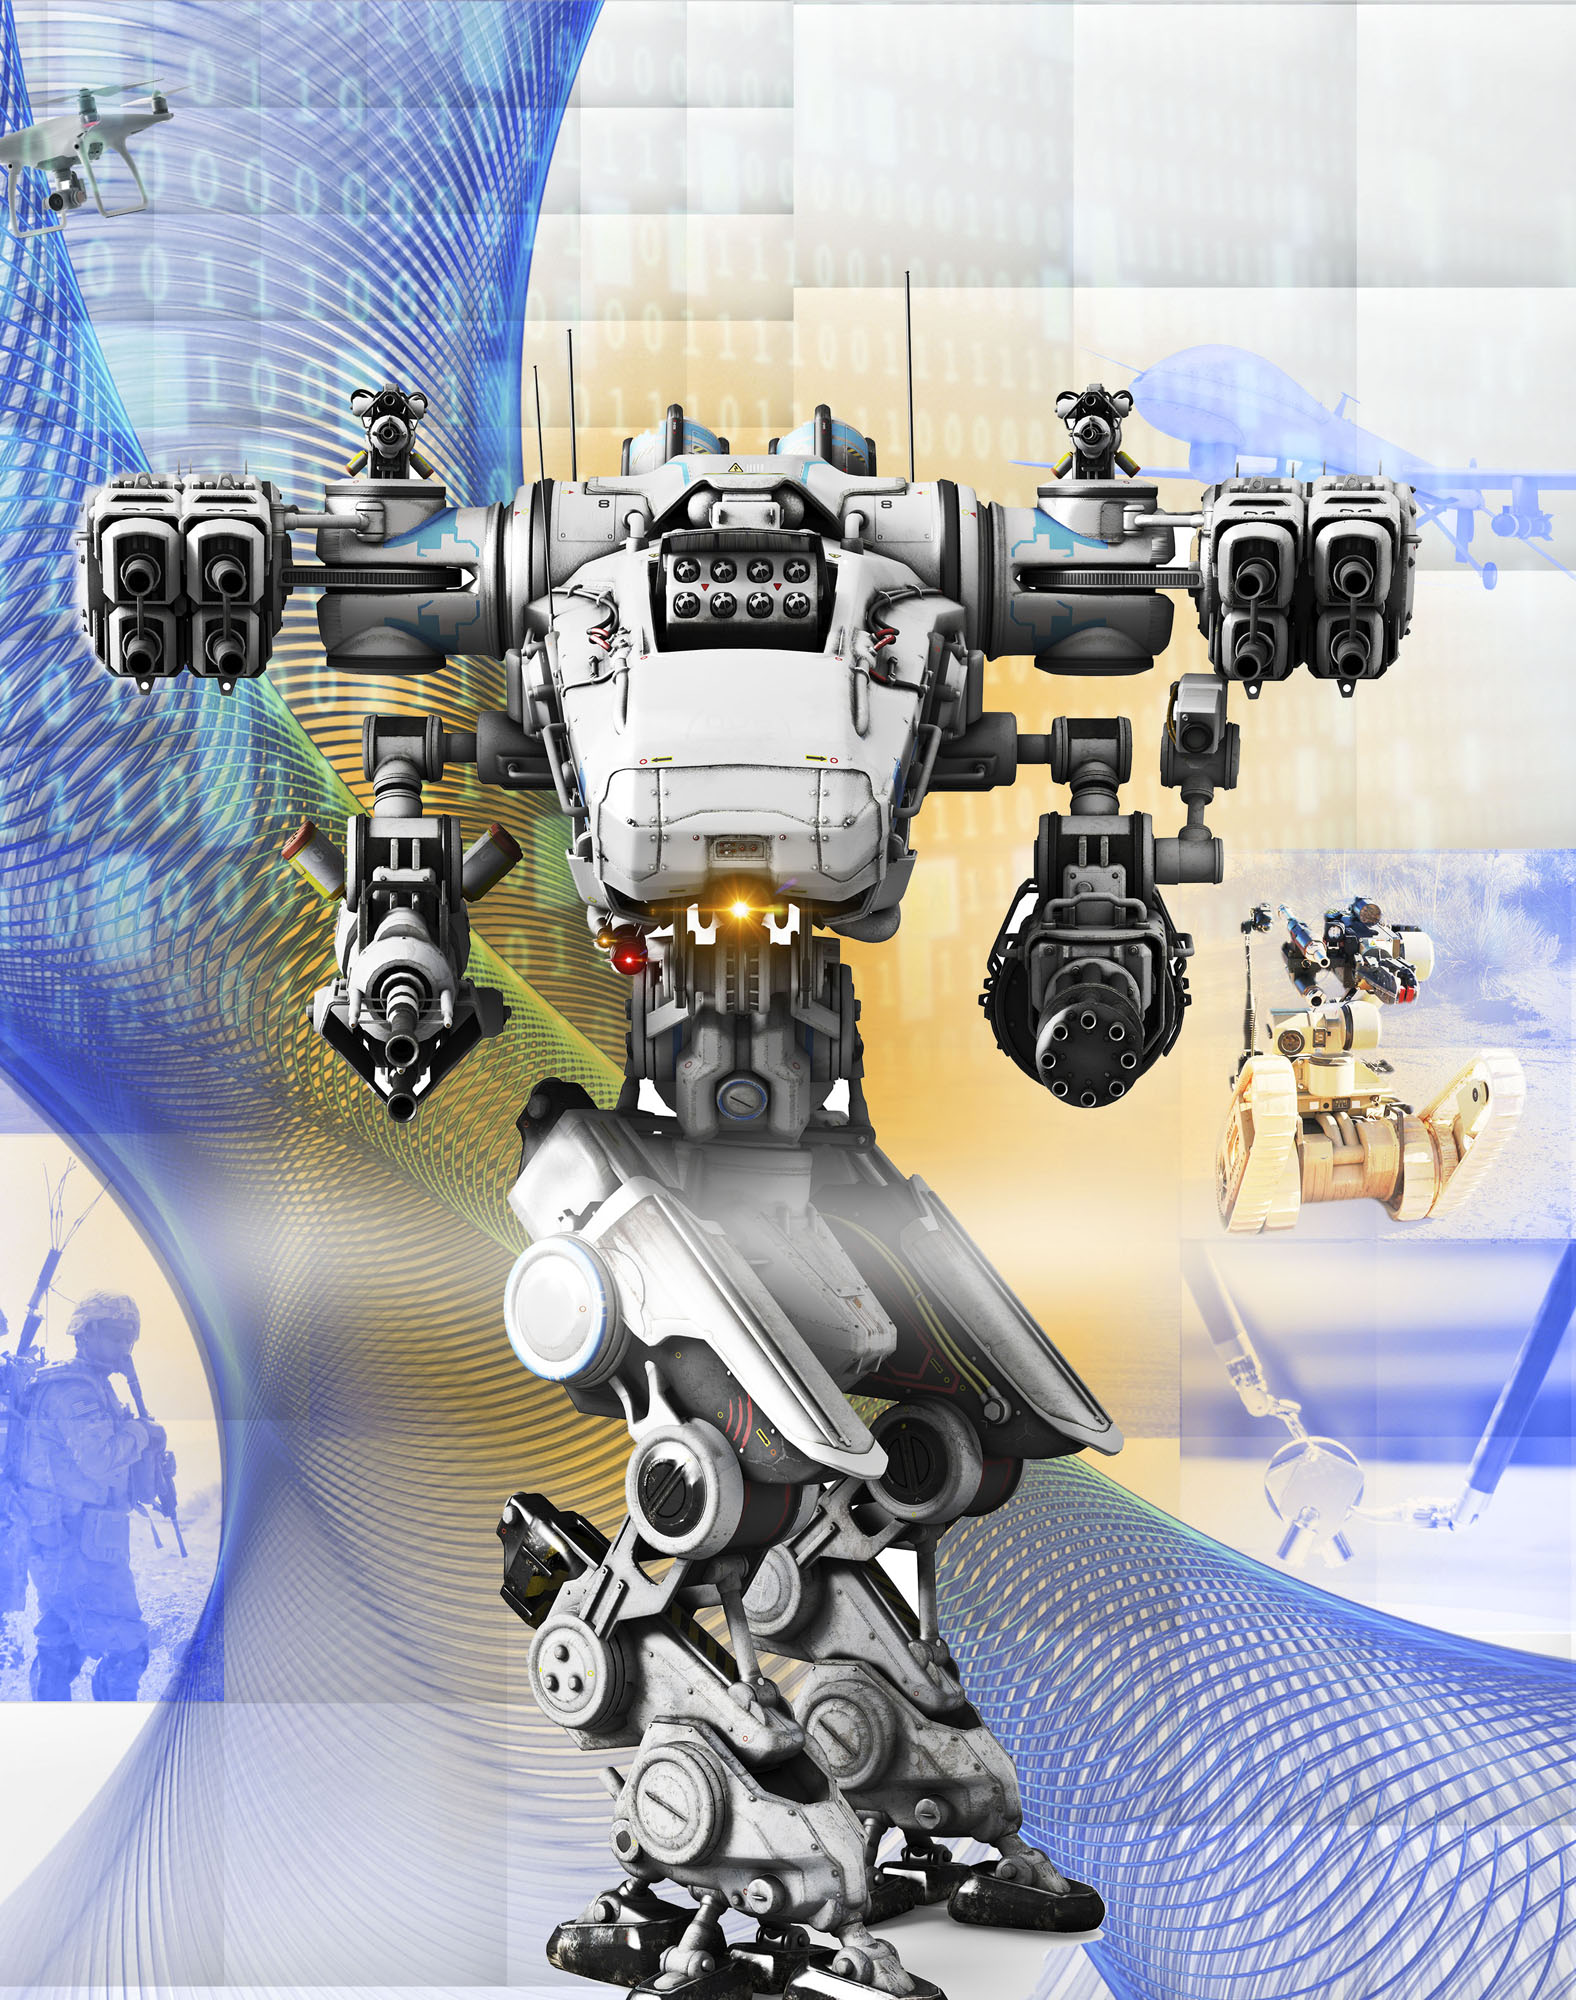 Determining which advances in robotics and AI to pursue is a high-stakes game of predicting the future, improving testing and reducing barriers to entry and innovation. (Image by (USAASC/DigtialStorm/iStock)